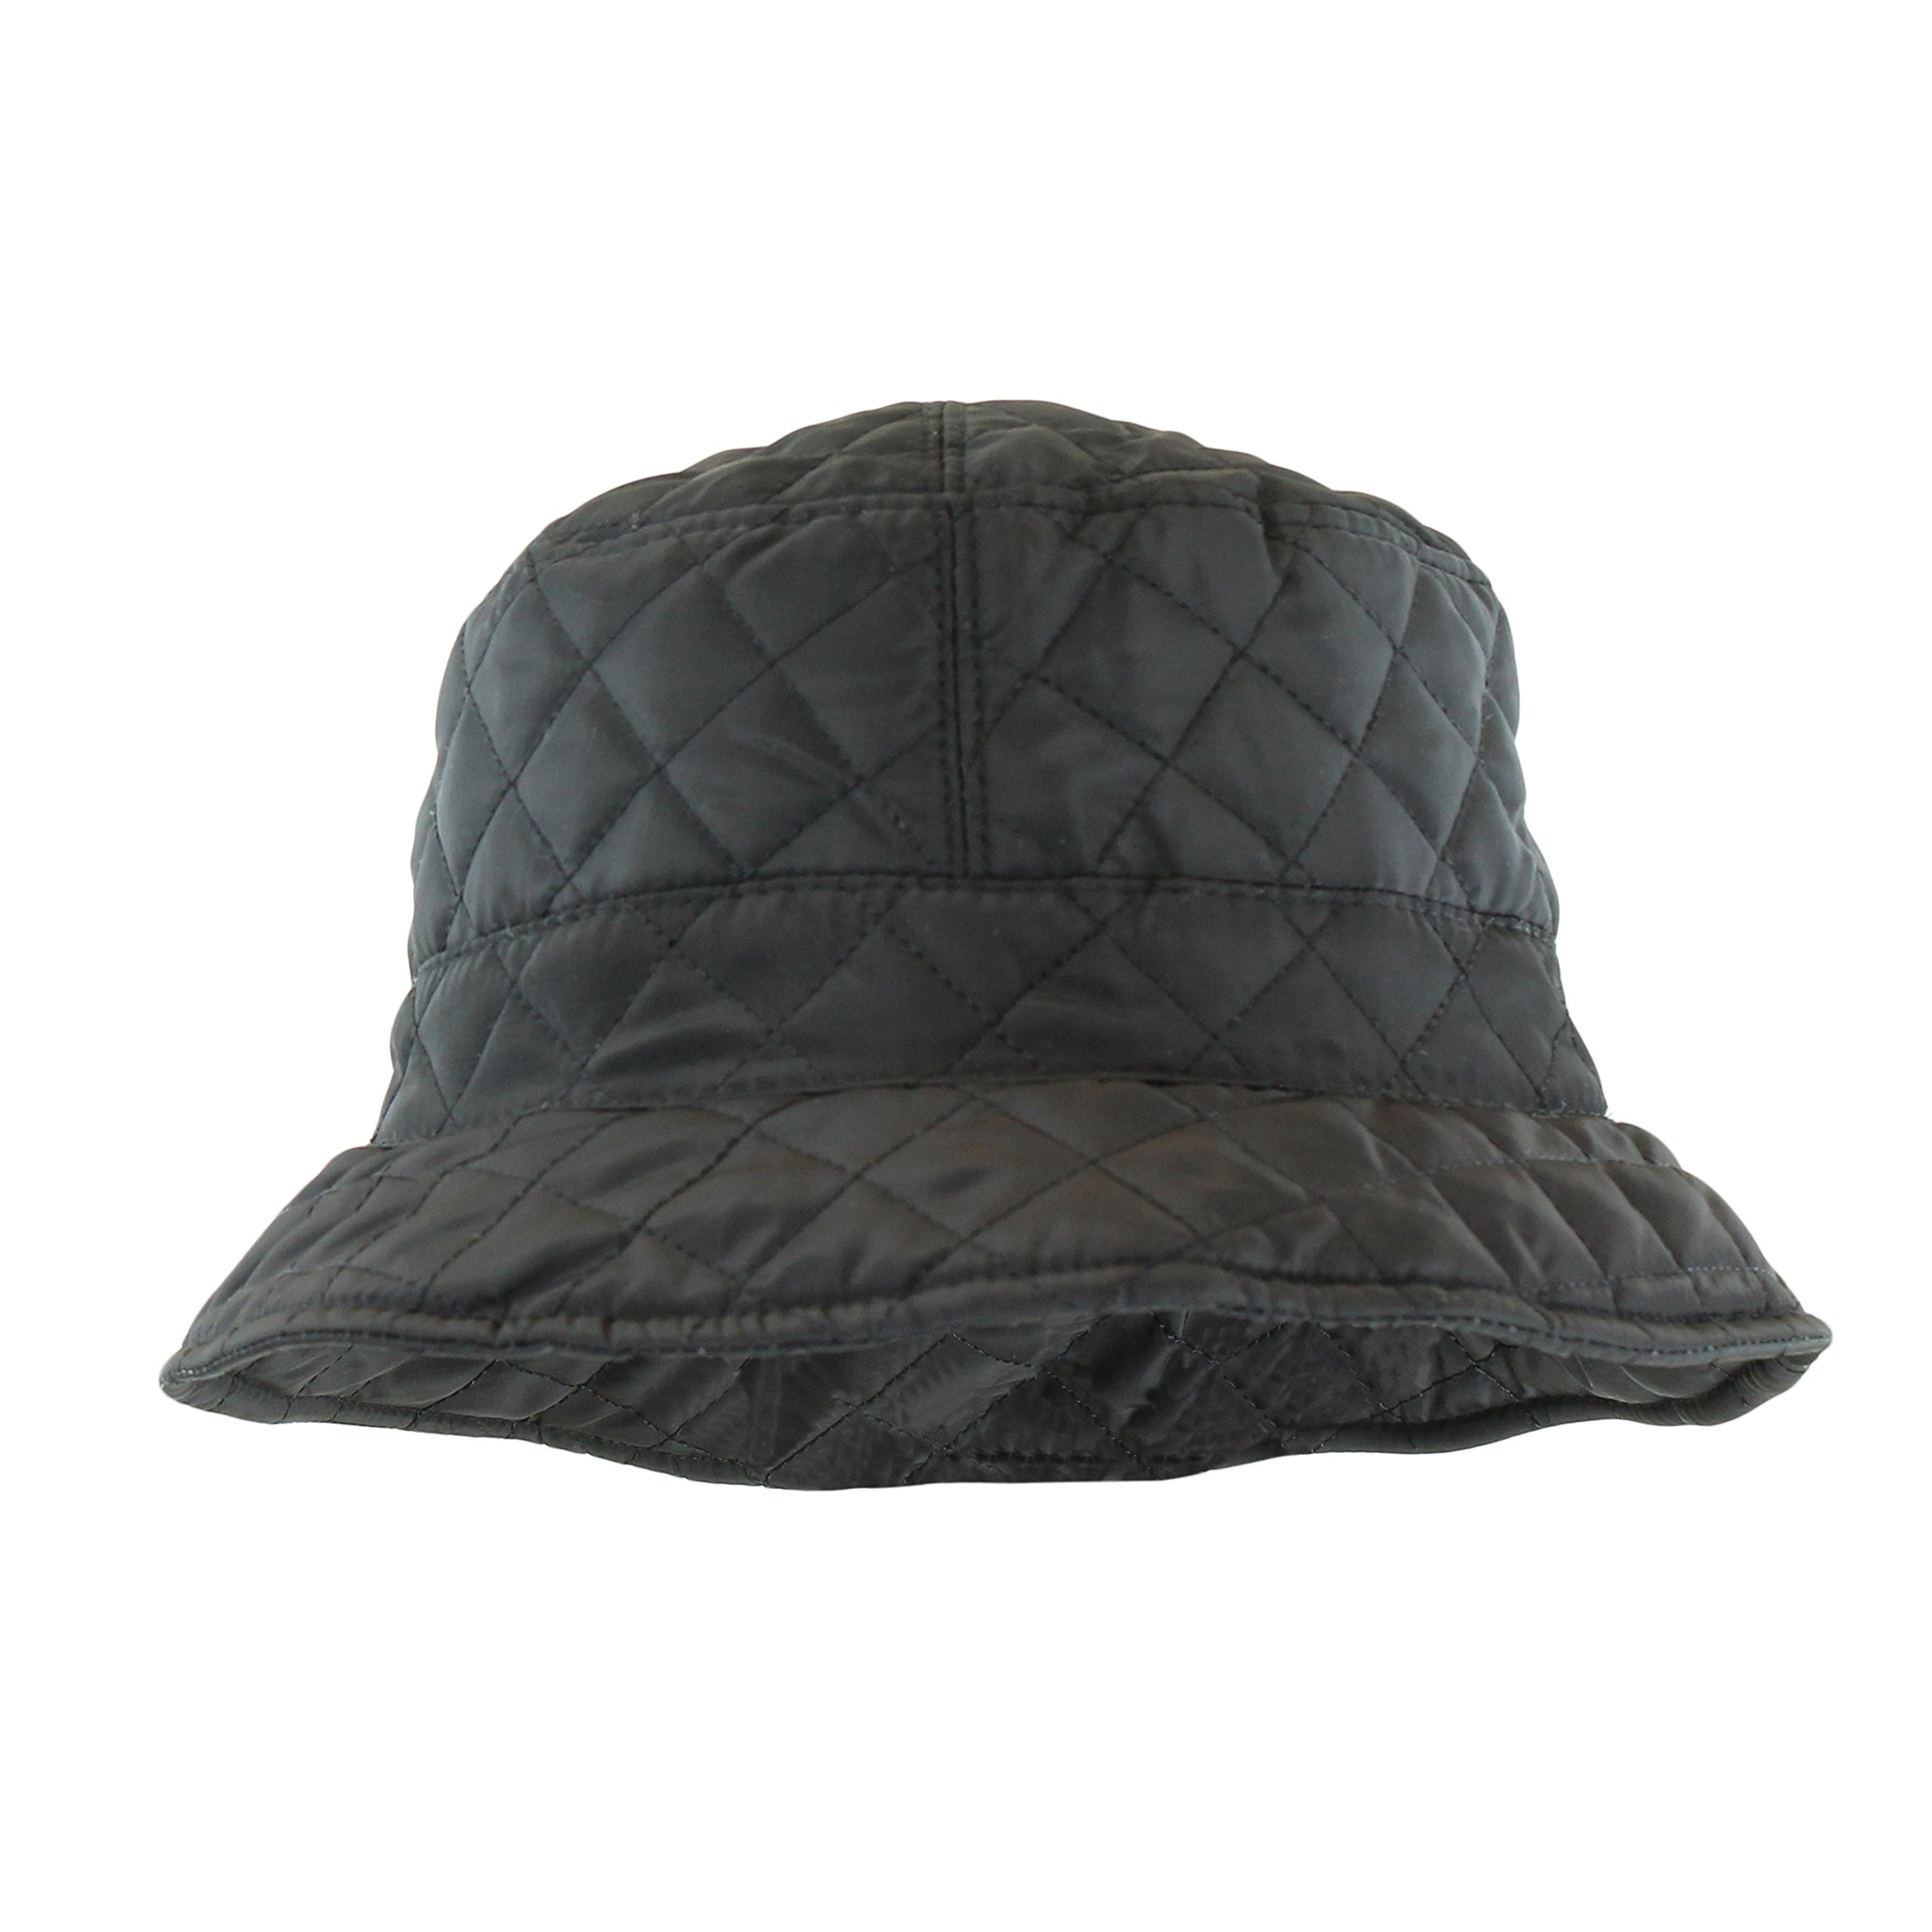 7e8cffc1aac FLH Foldable Water Repellent Quilted Rain Hat w Adjustable Drawstring